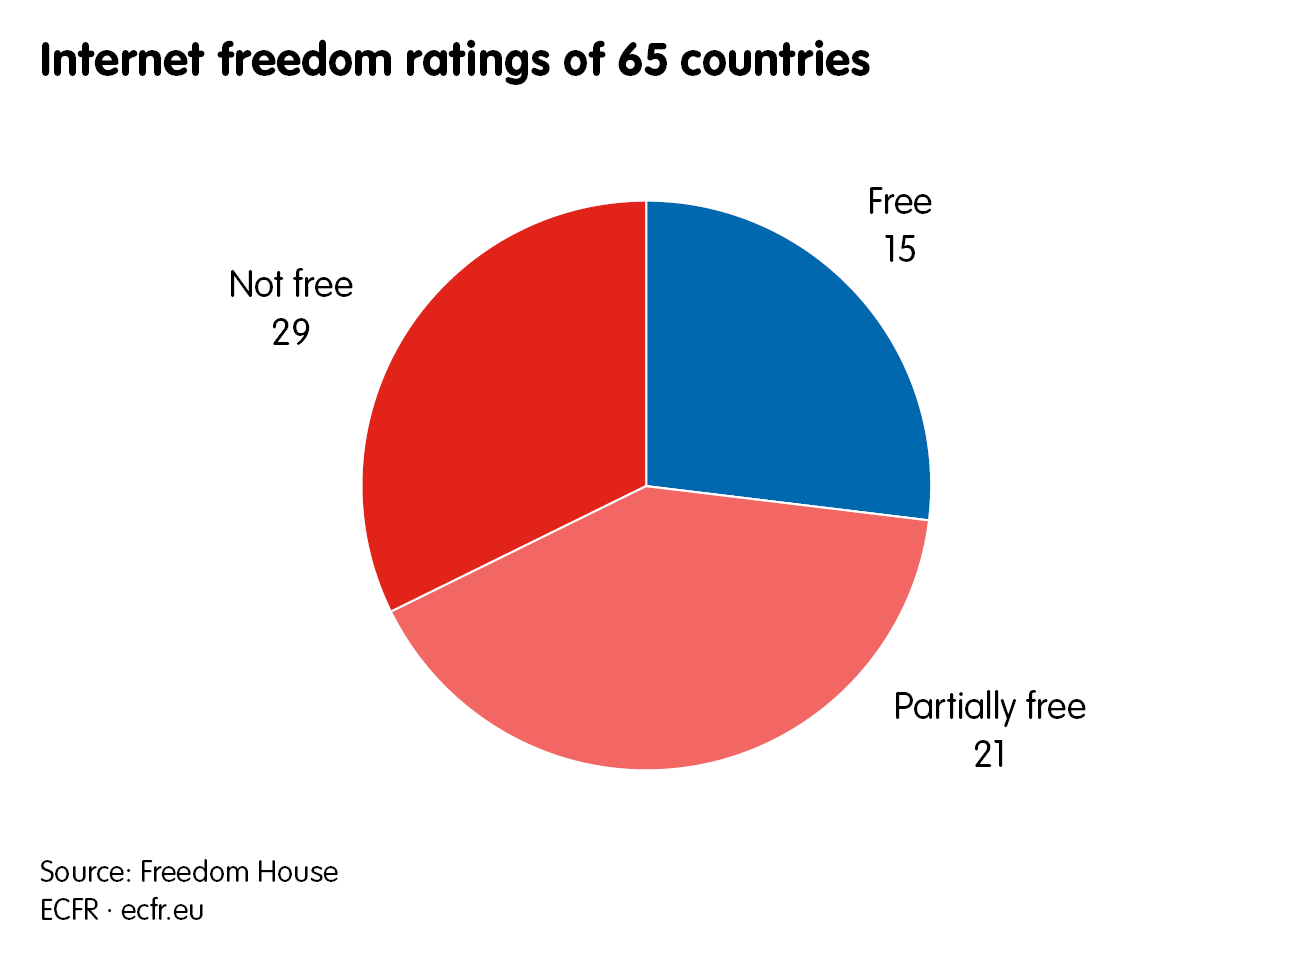 Internet freedom ratings of 65 countries